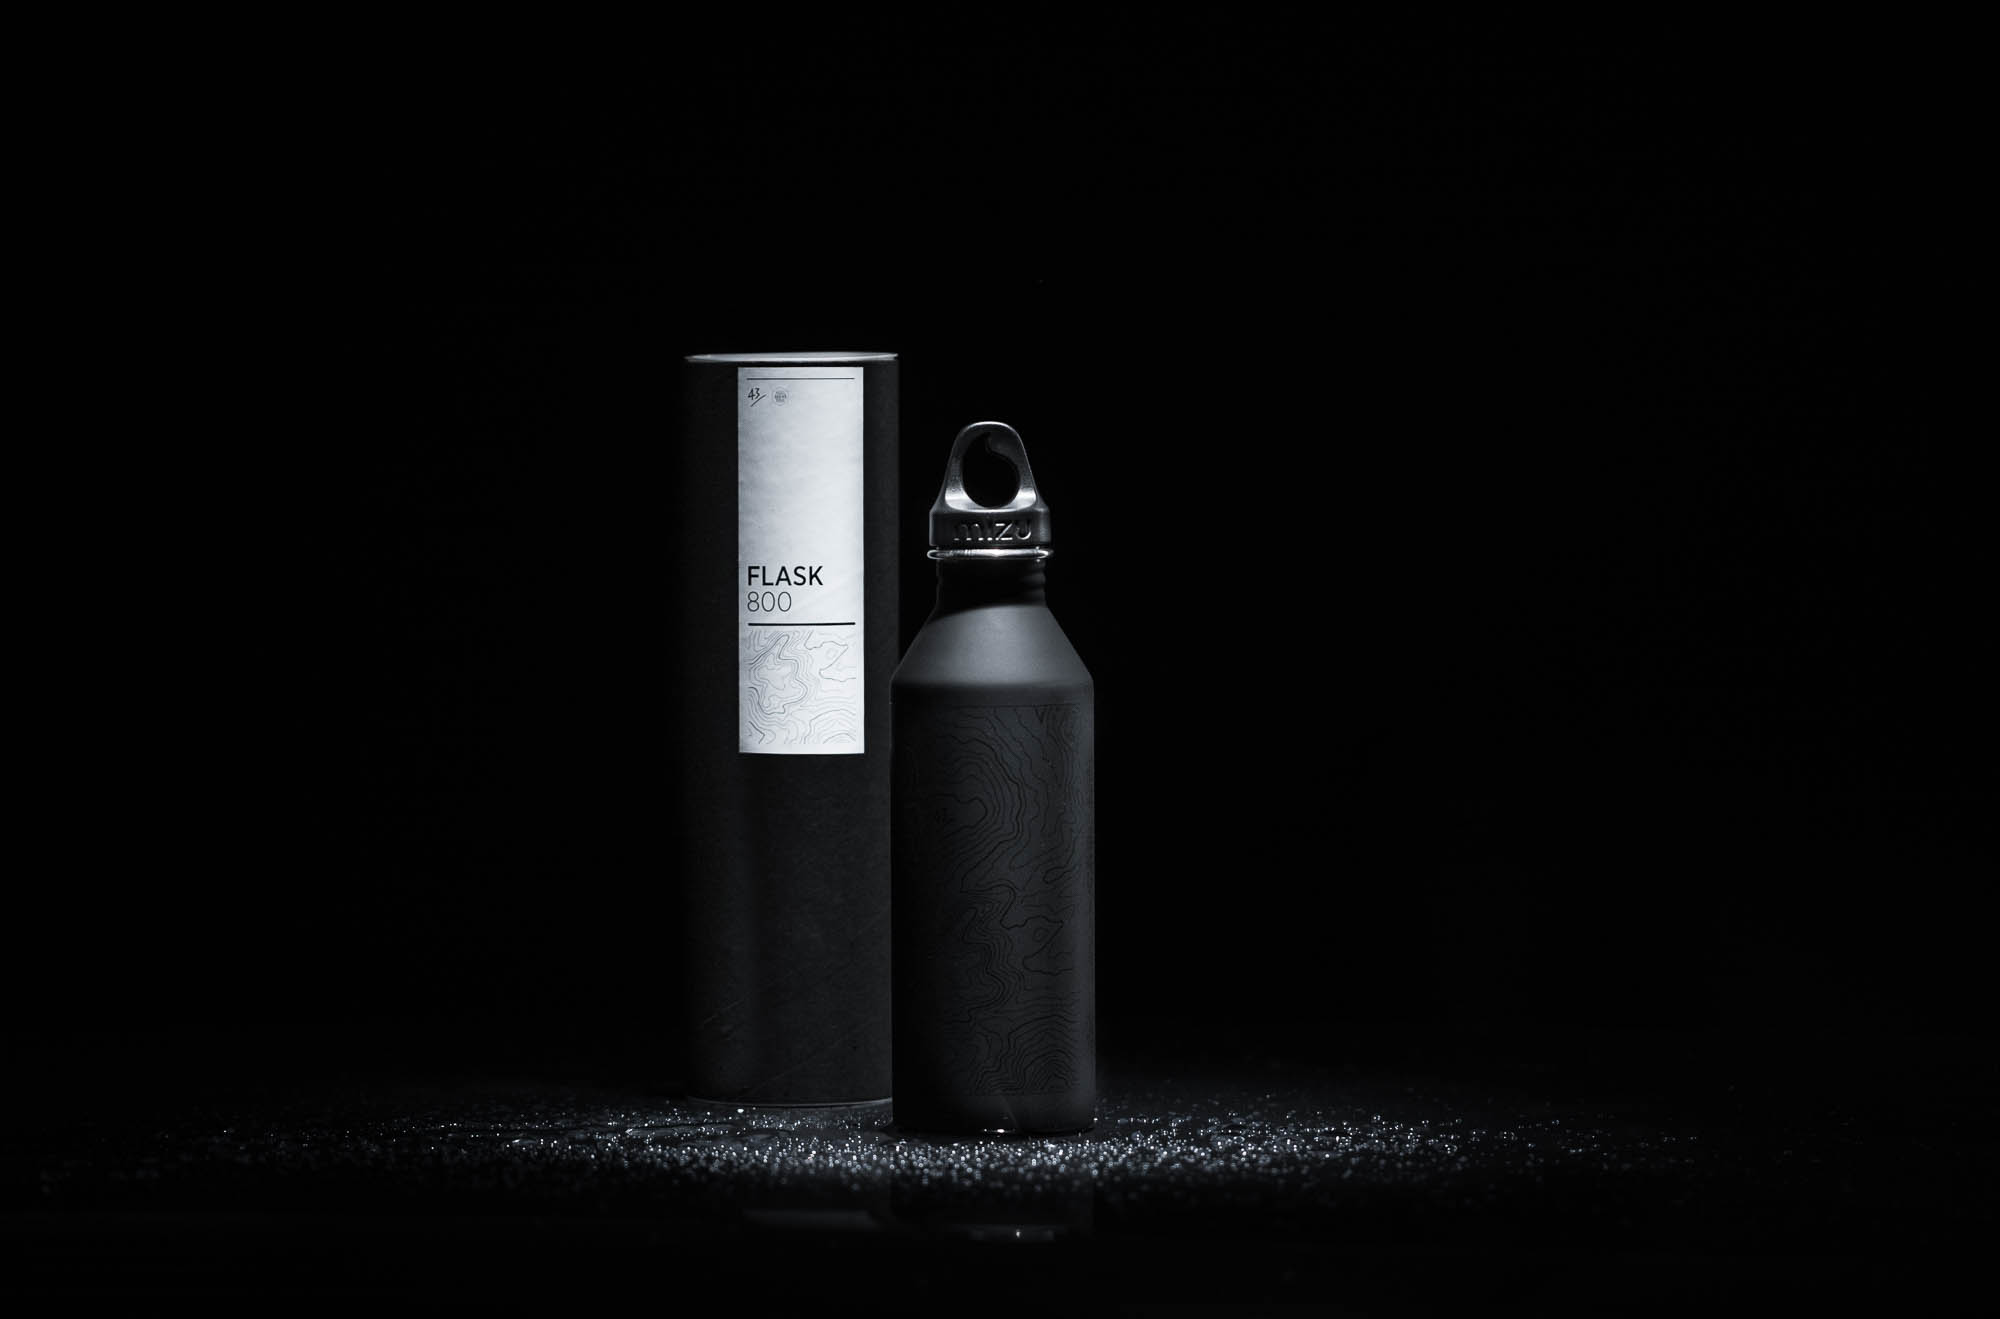 FLASK 800